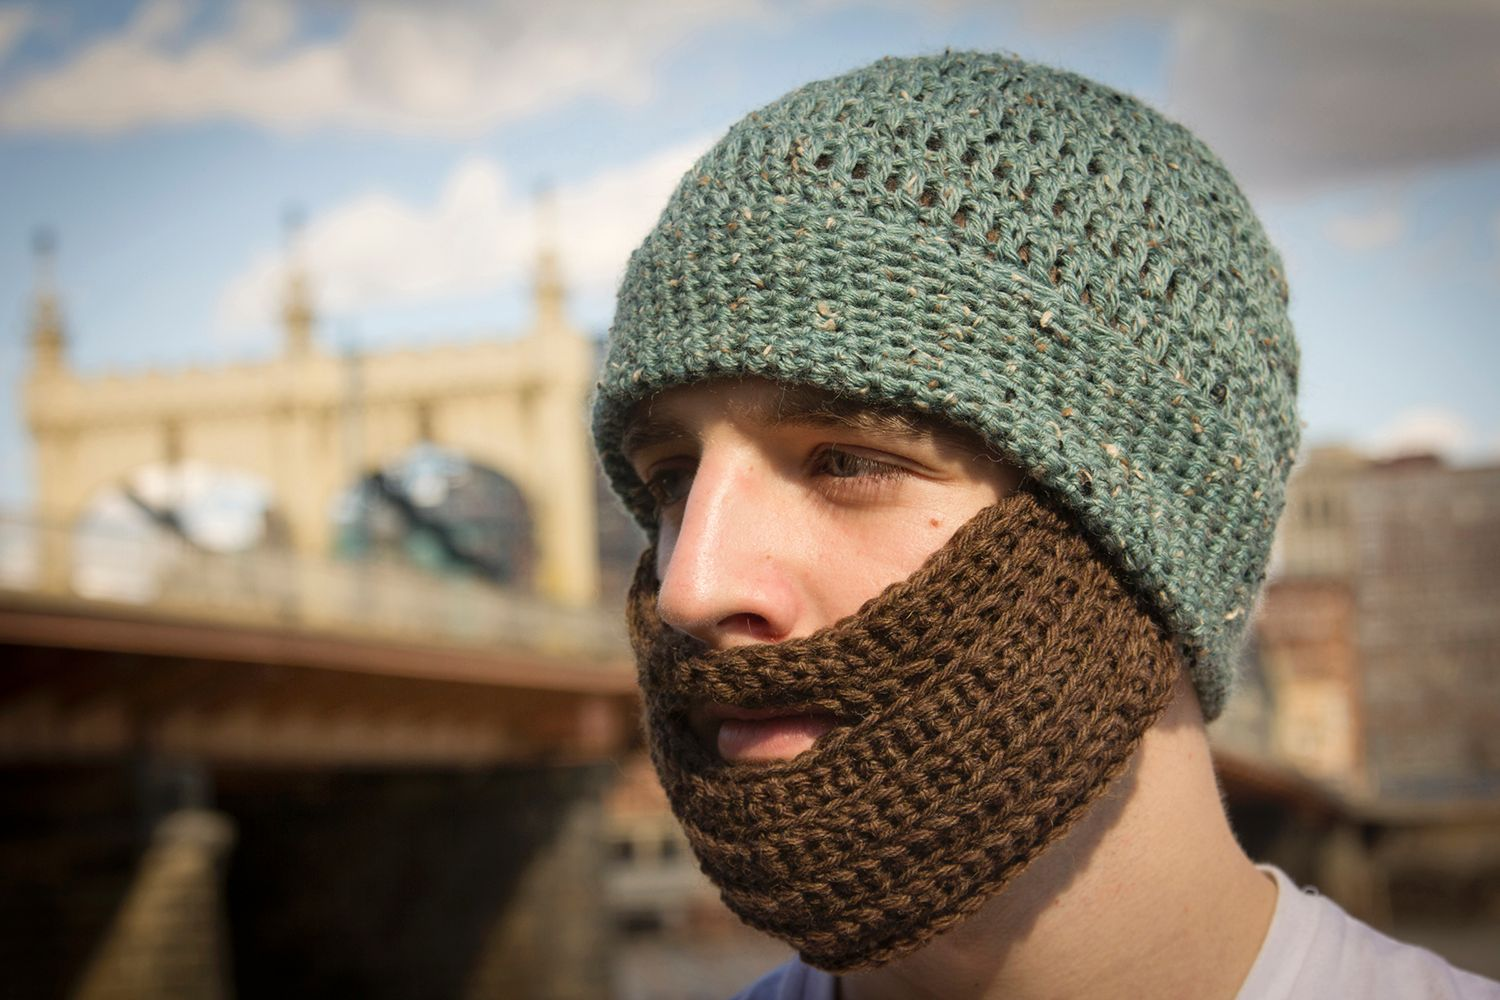 Crochet Bearded Hat - Knitting Patterns and Crochet ...